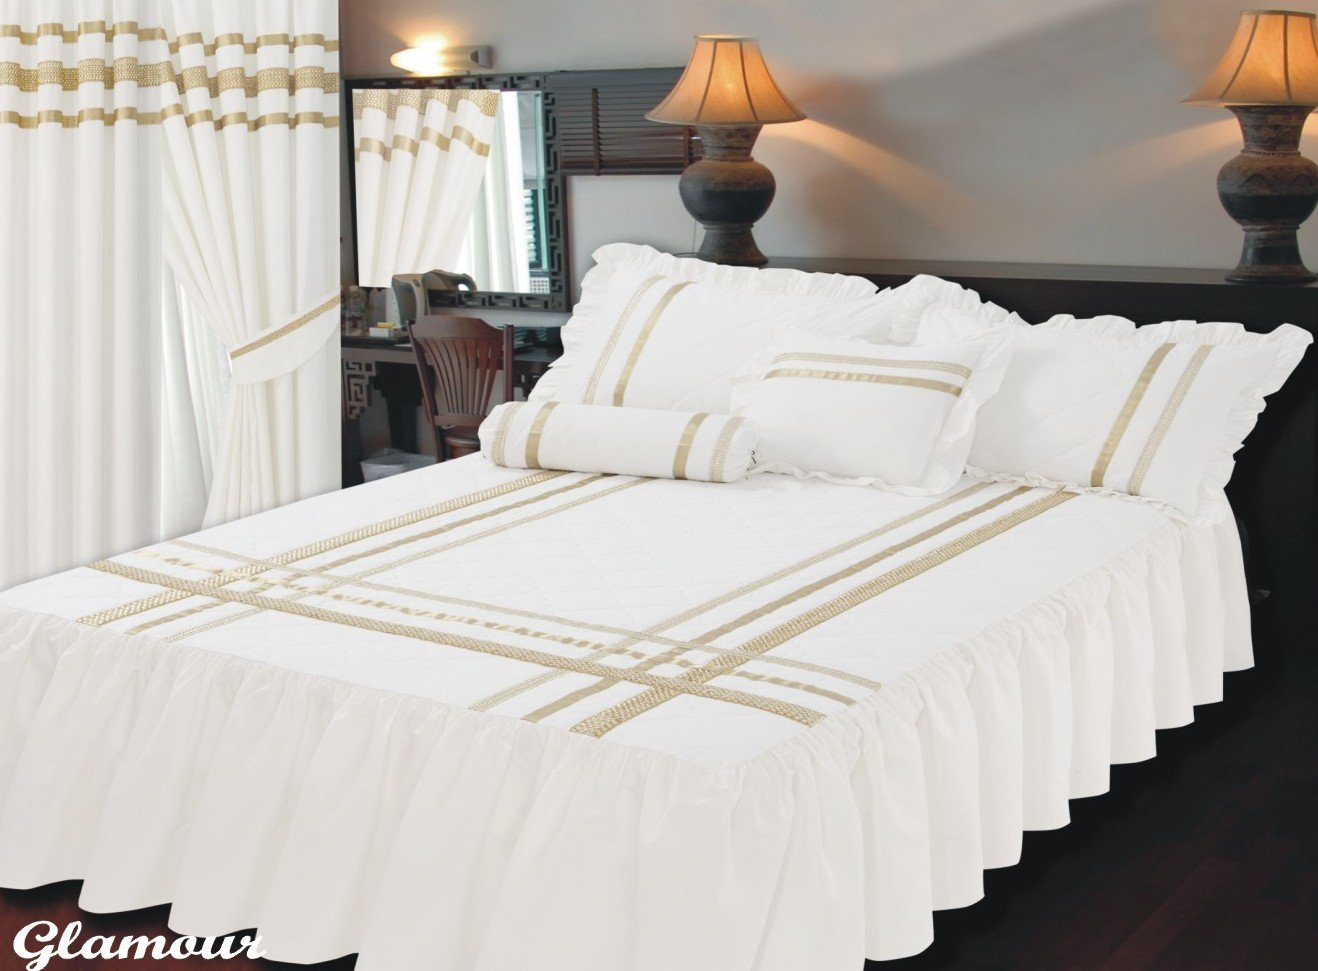 Double Bed Size Fitted Bedspread Glamour White With Gold Trim / Ribbon, Frilled Quilted Bedspread & Pillow Shams, Extra Deep 22